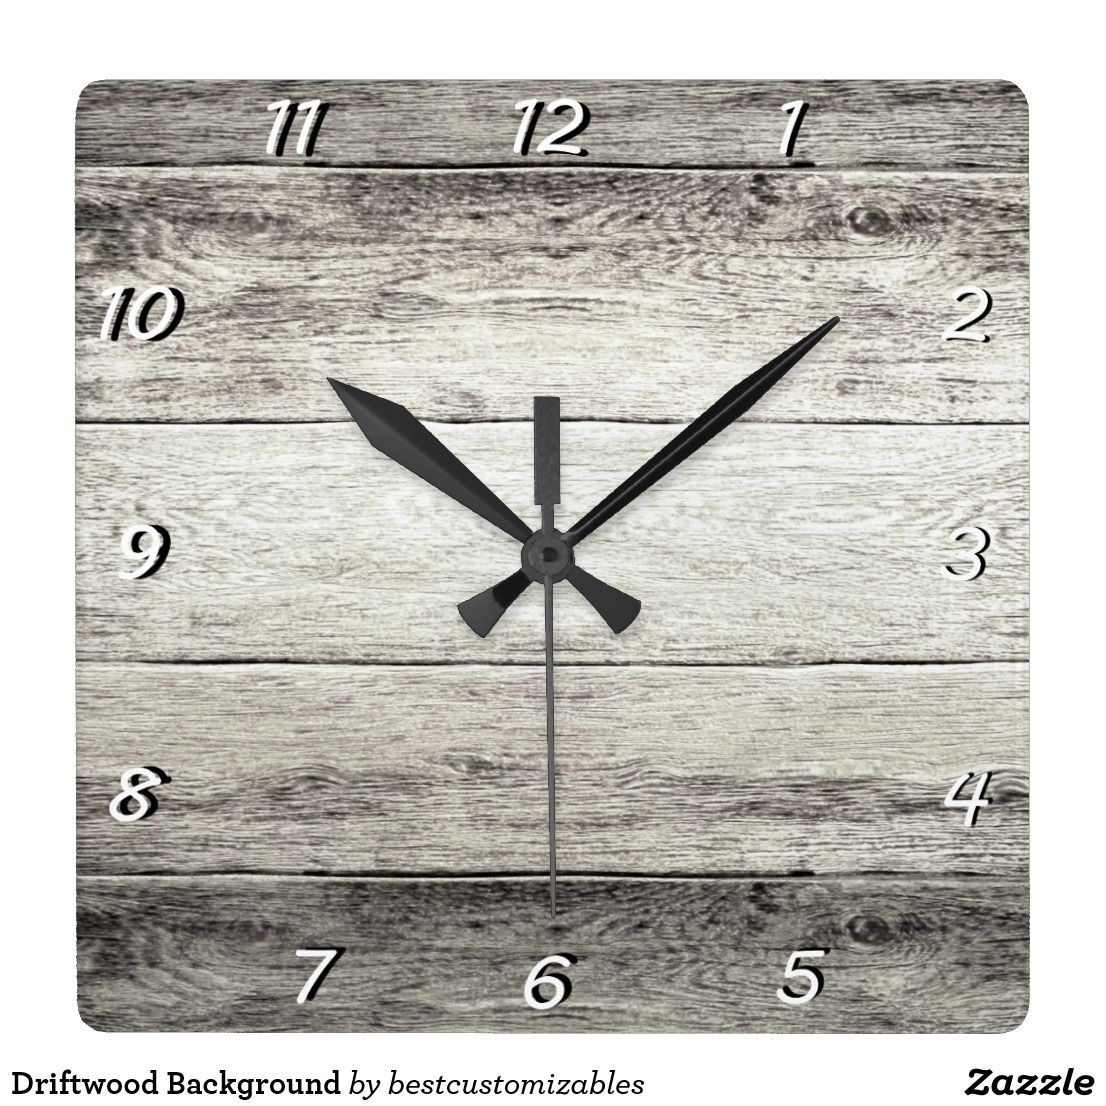 Driftwood background square wall clock clocks pinterest driftwood background square wall clock amipublicfo Image collections